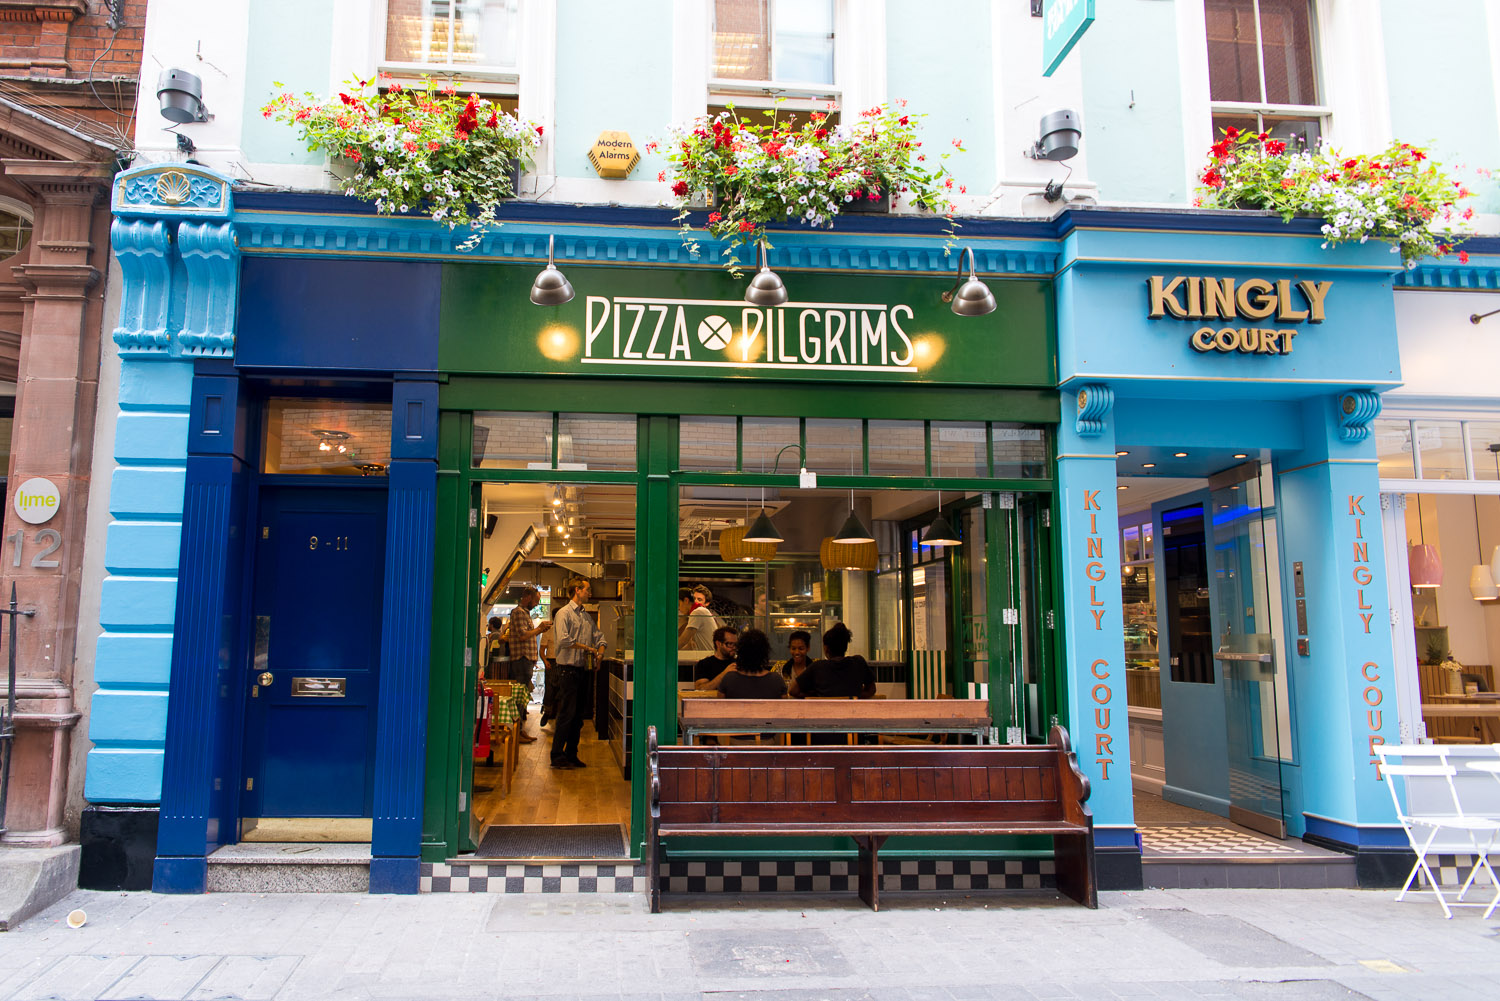 PIZZA PILGRIMS | KINGLY COURT | WE LOVE FOOD, IT'S ALL WE EAT